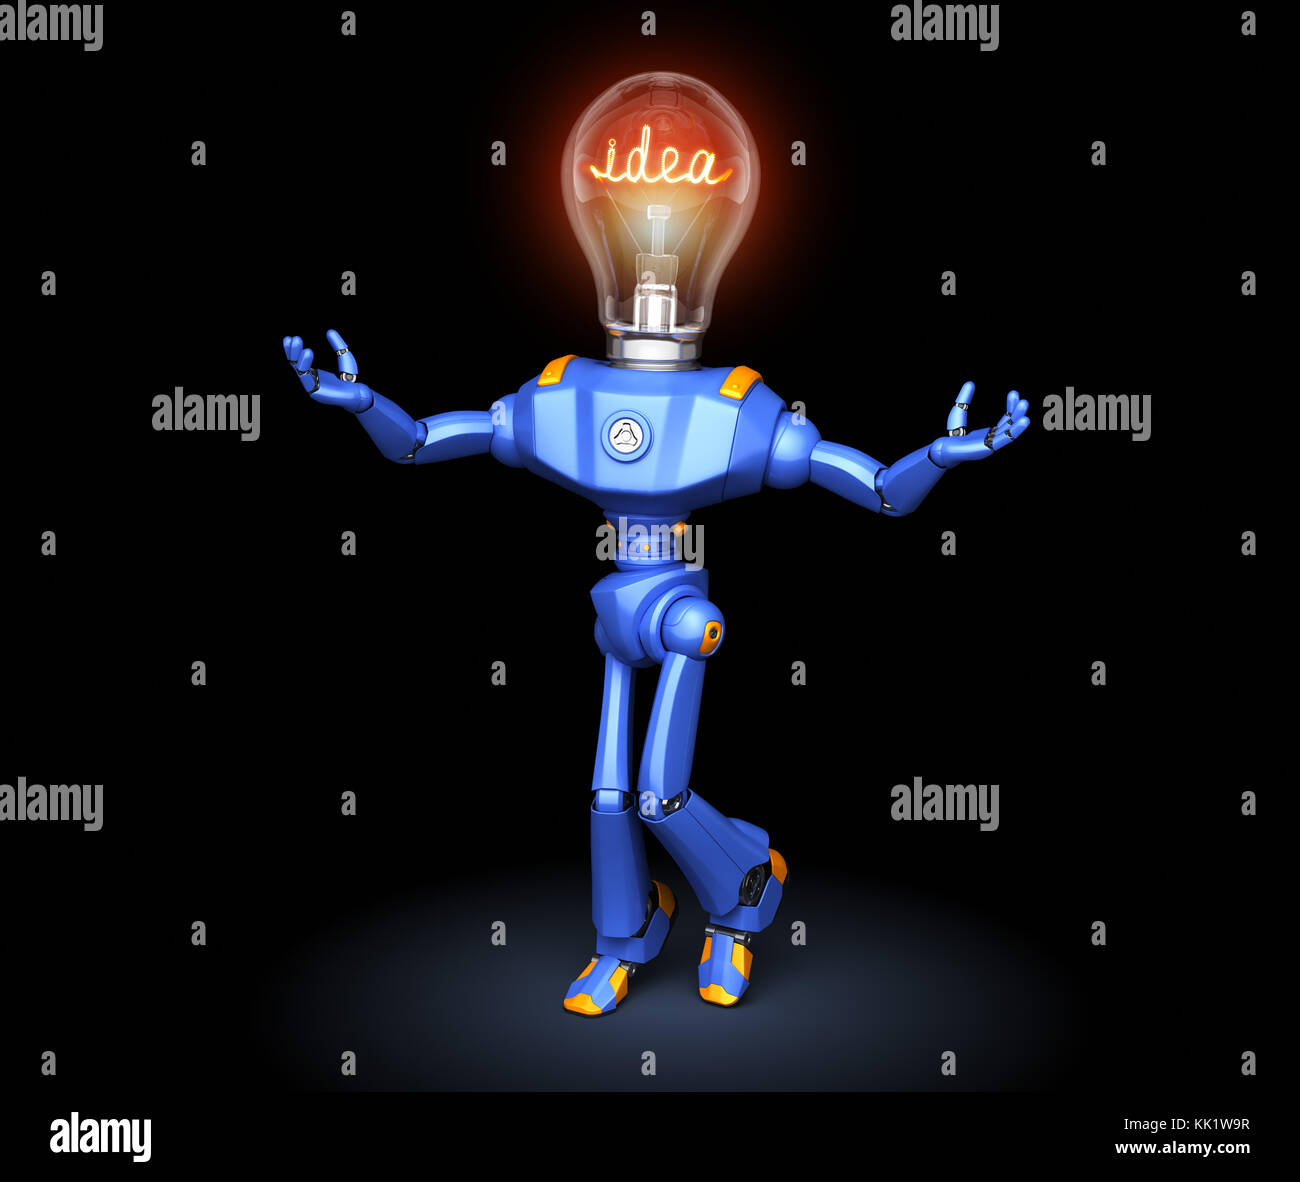 Robot mignon eu idée. 3d illustration Photo Stock